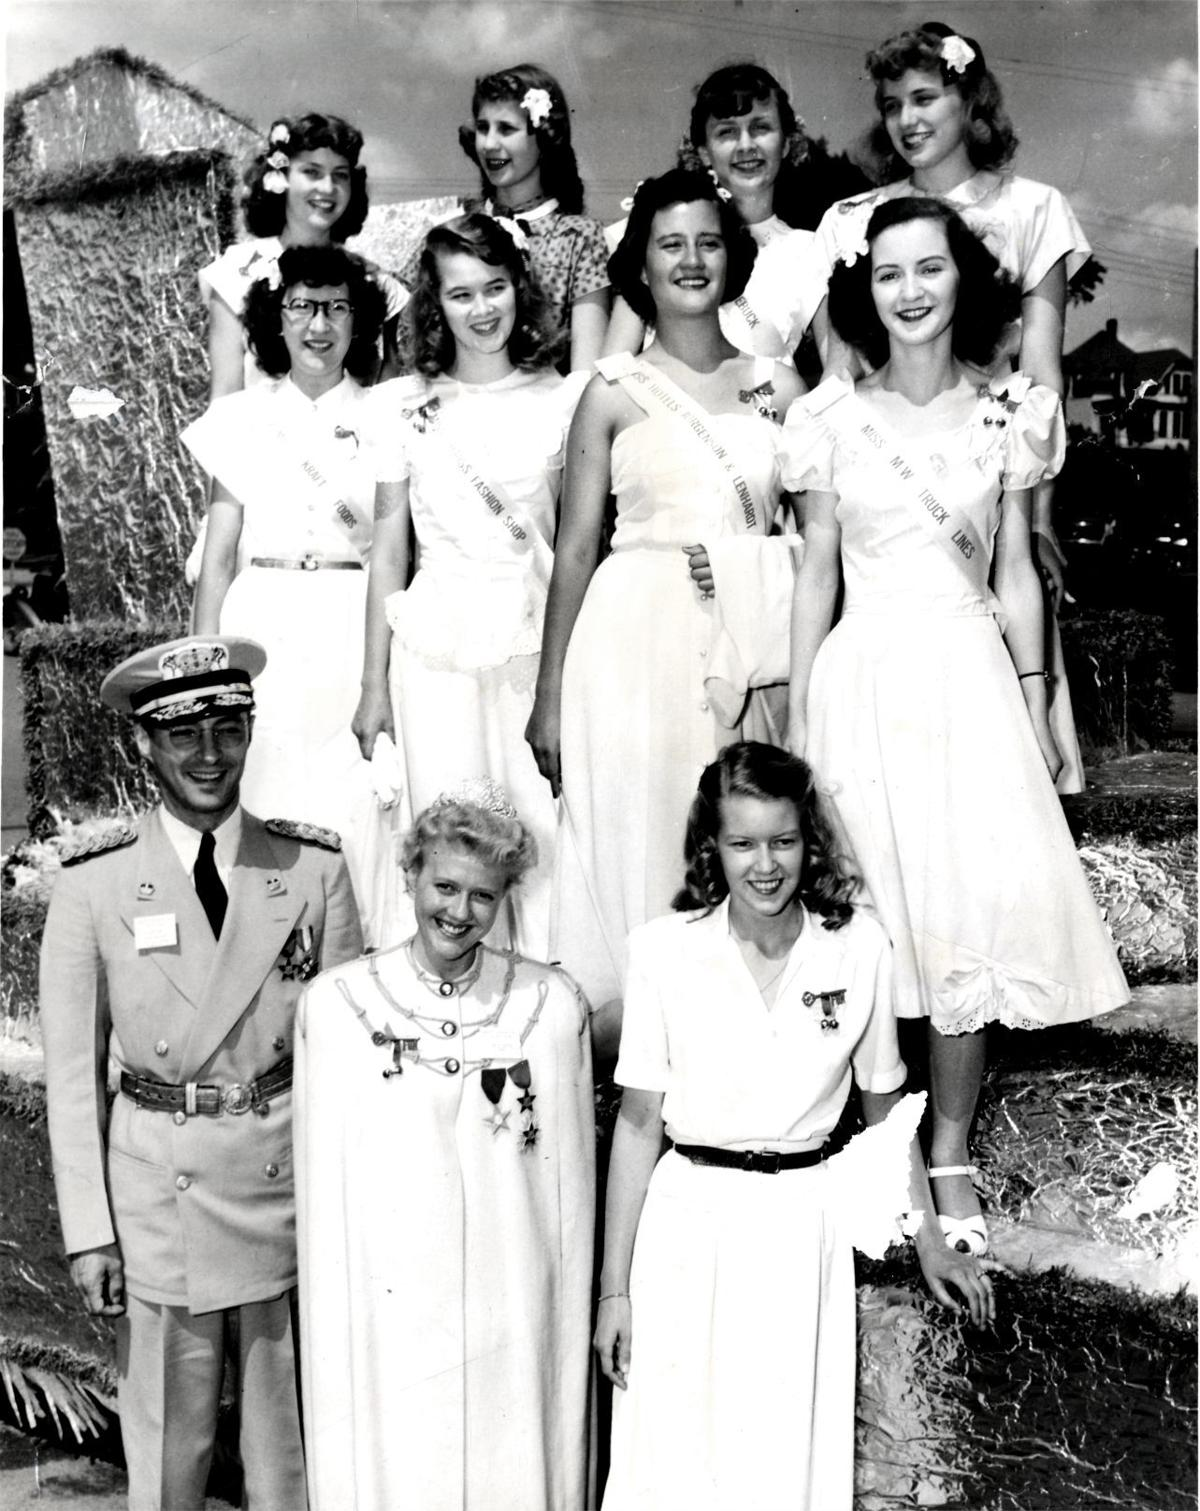 1948 WC Queen Candidates